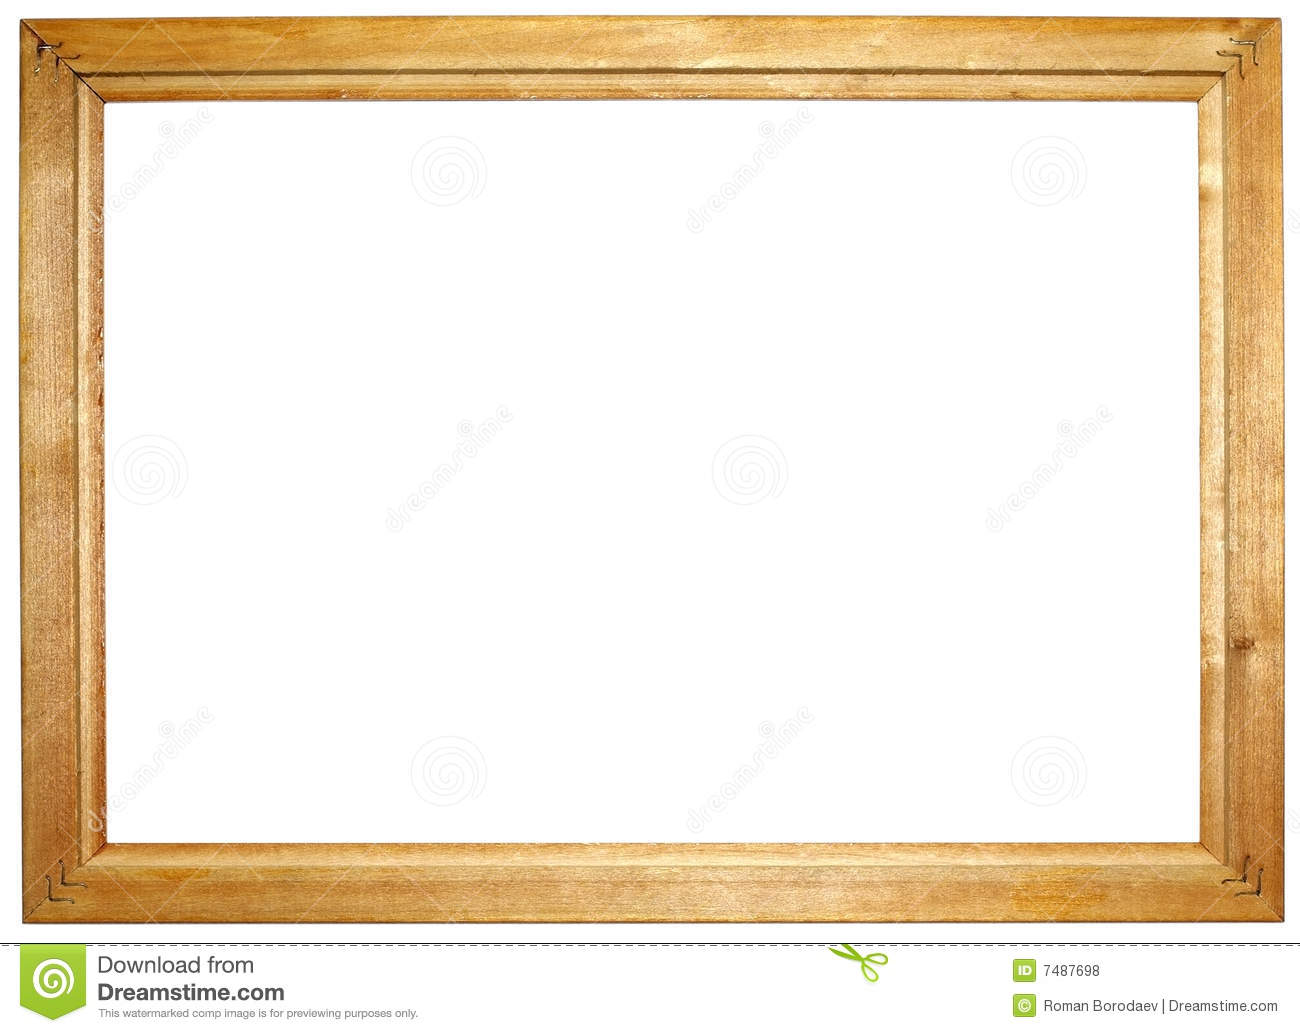 Simple wooden frame for photo with empty space for your background